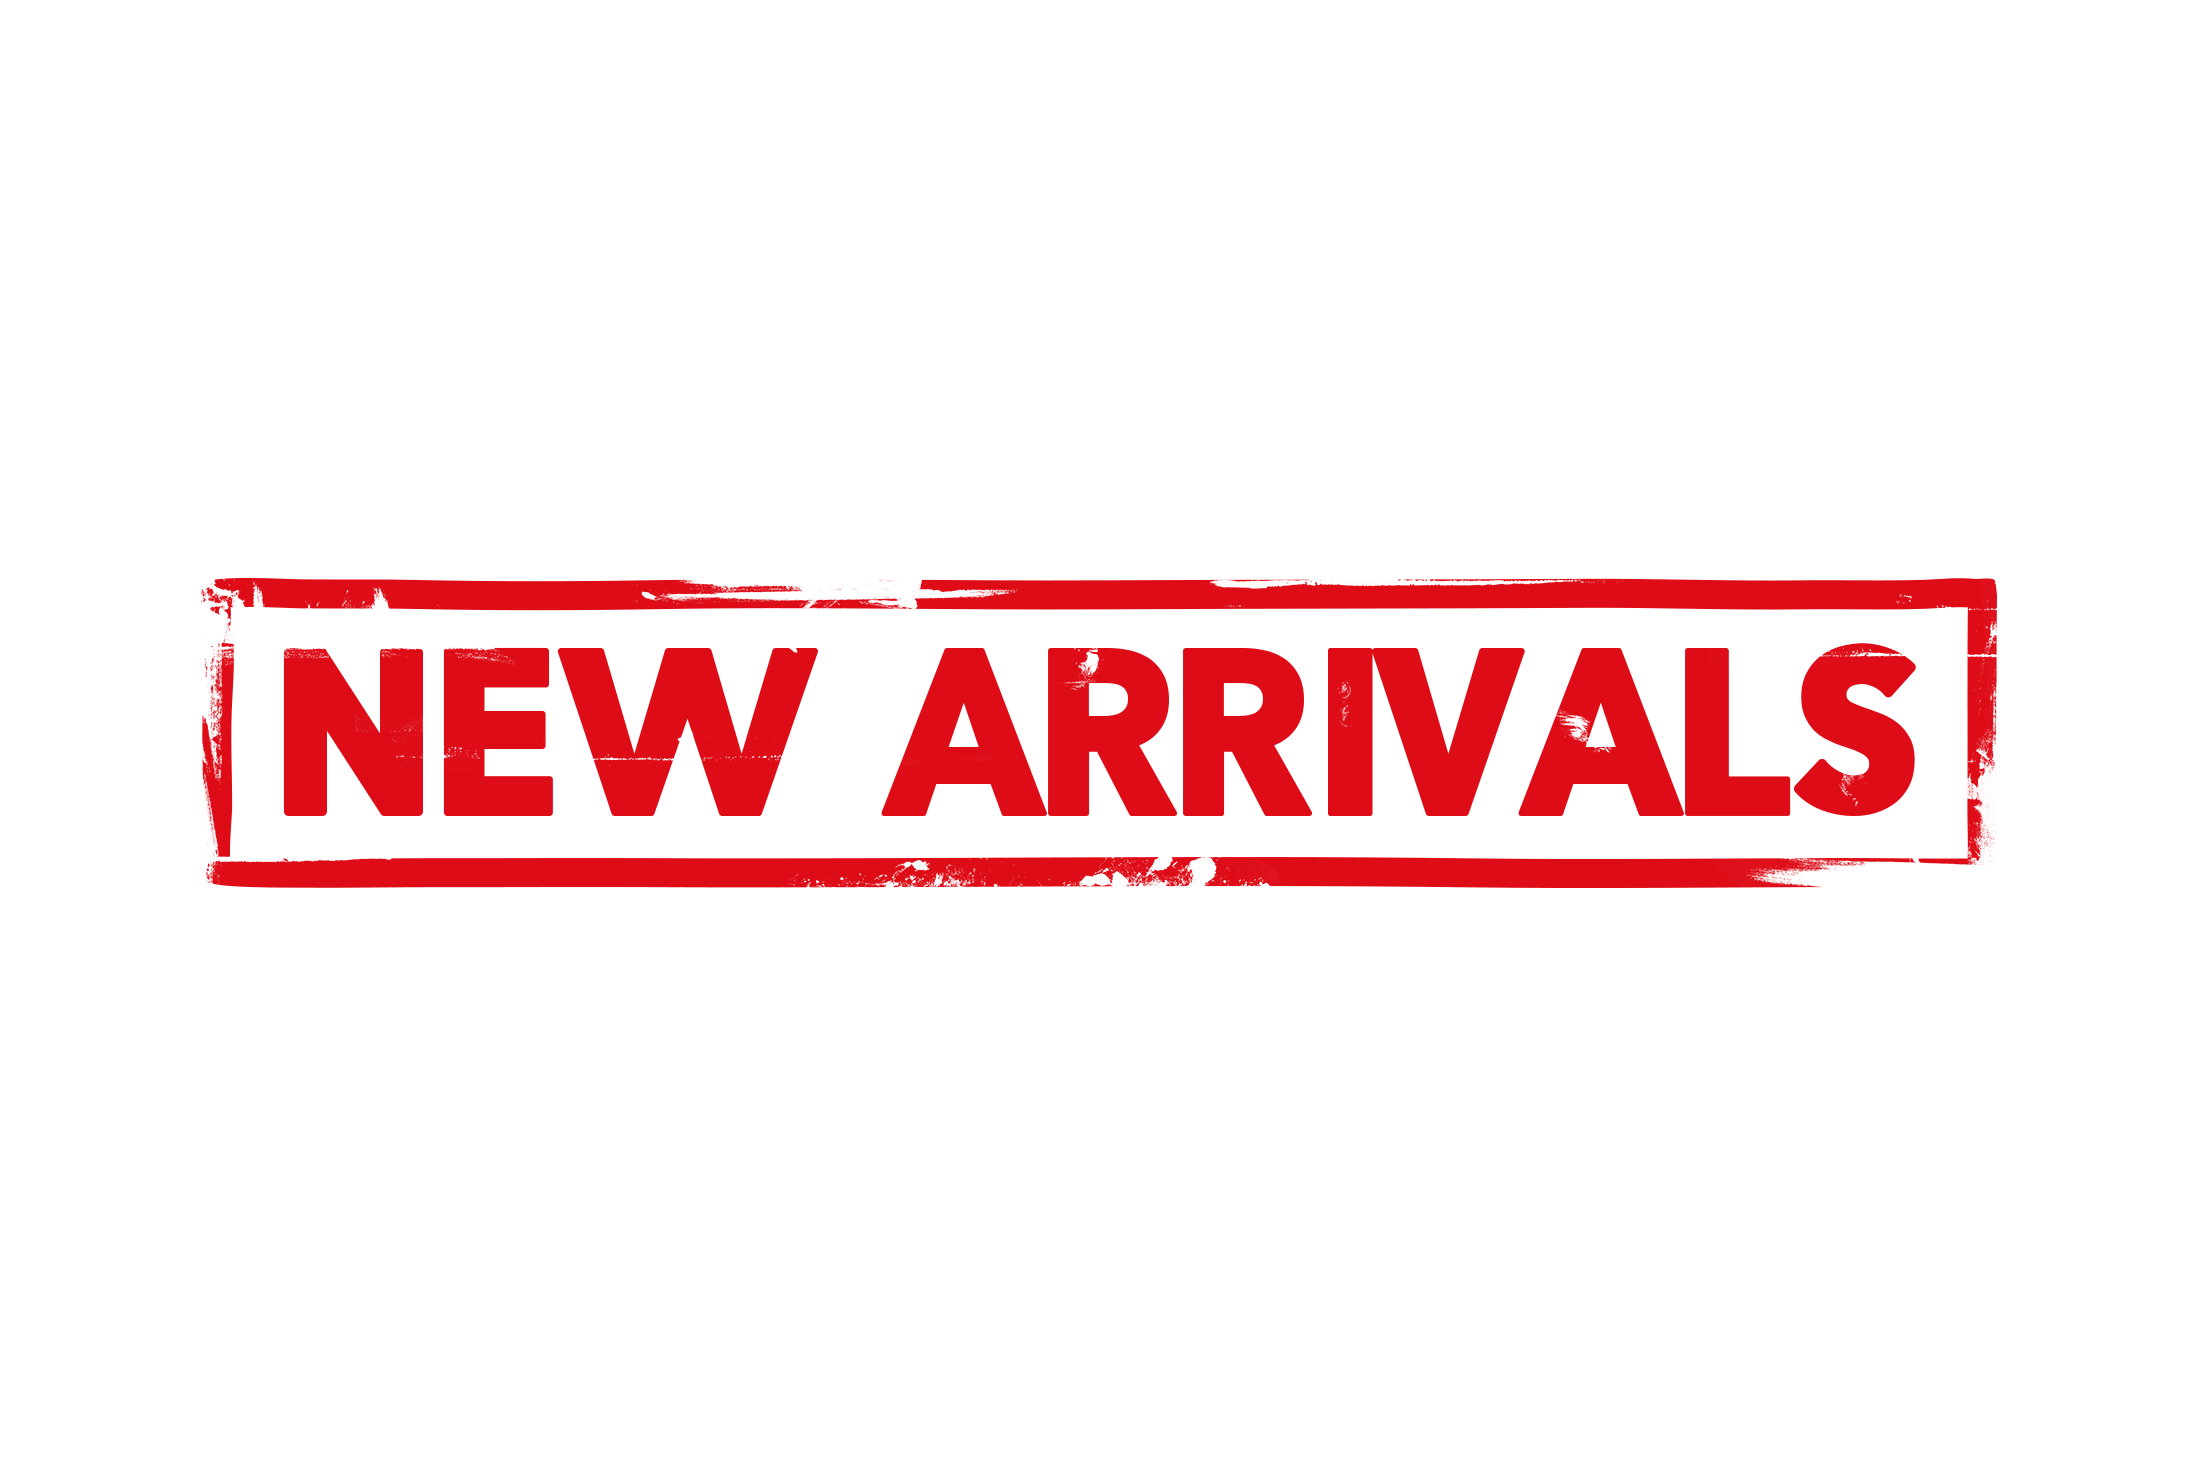 New arrivals stamp PSD